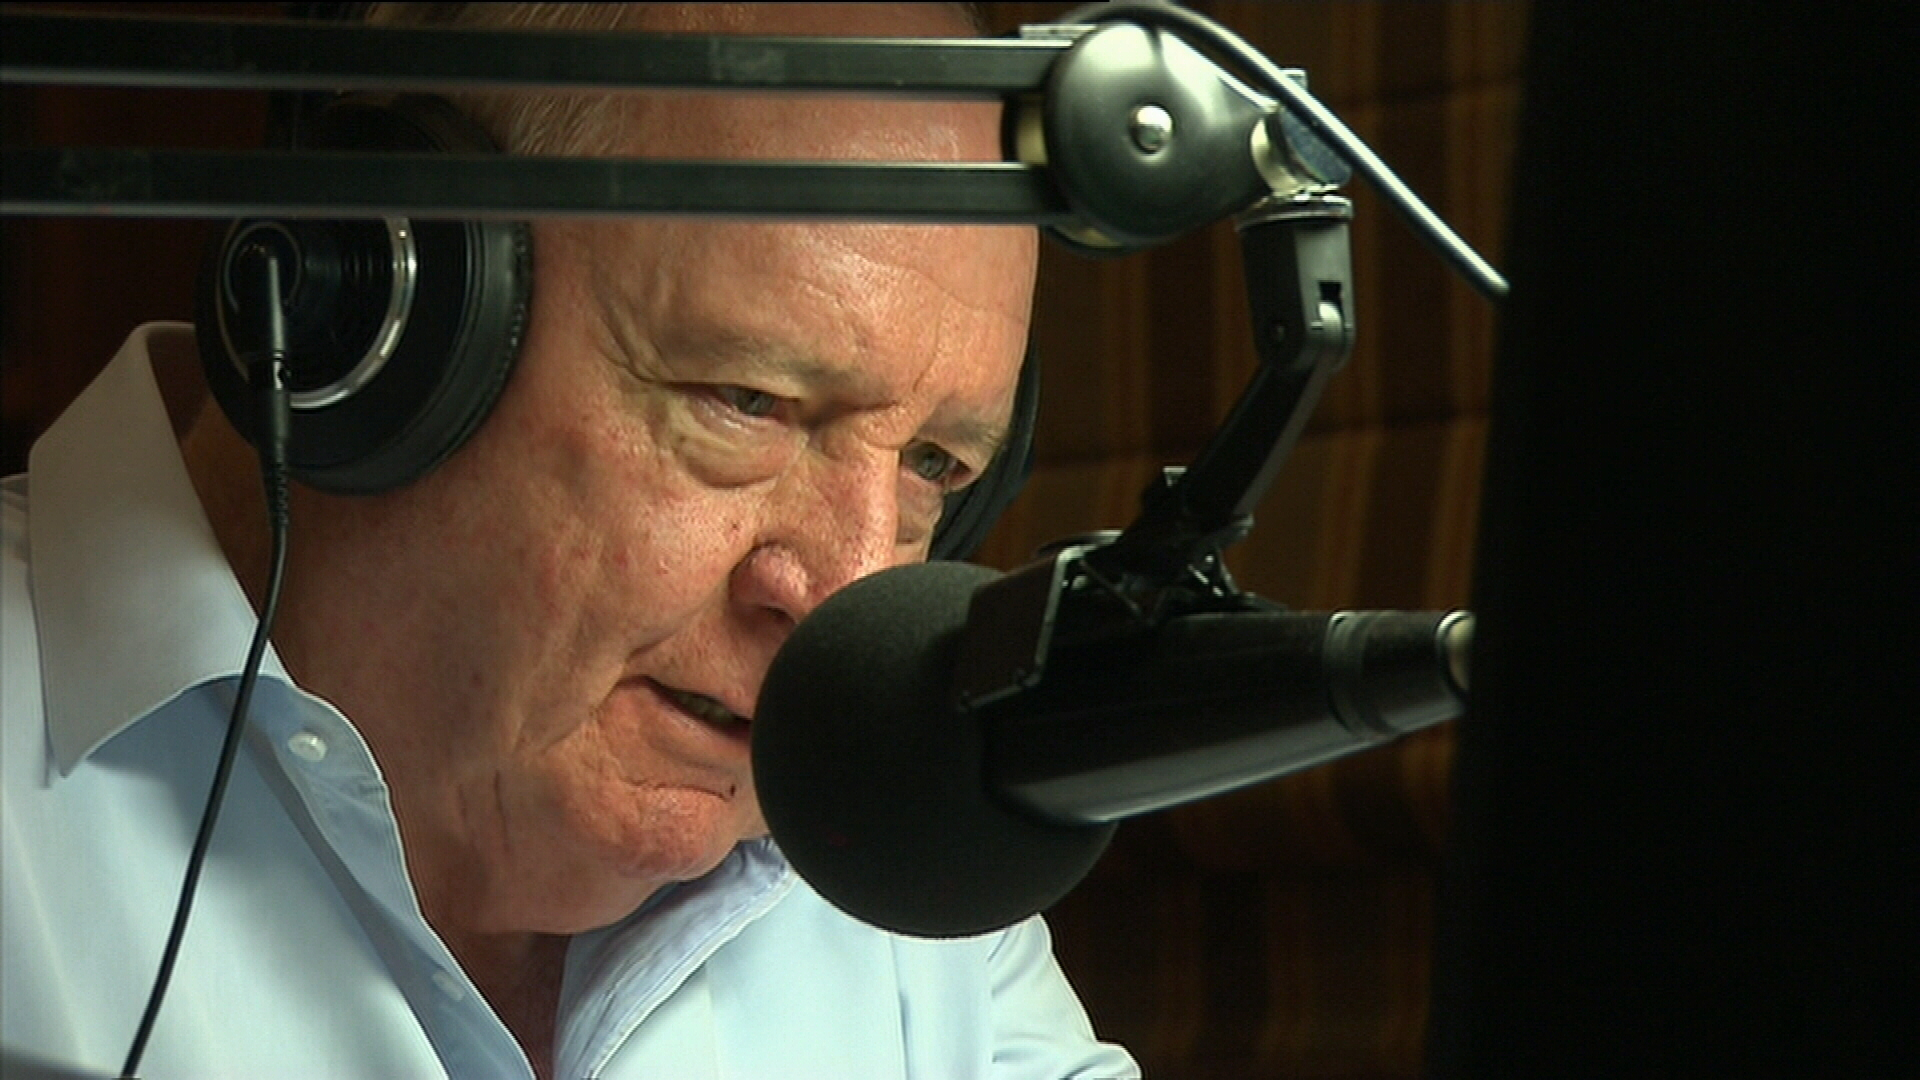 Alan Jones interviews PM on final radio show